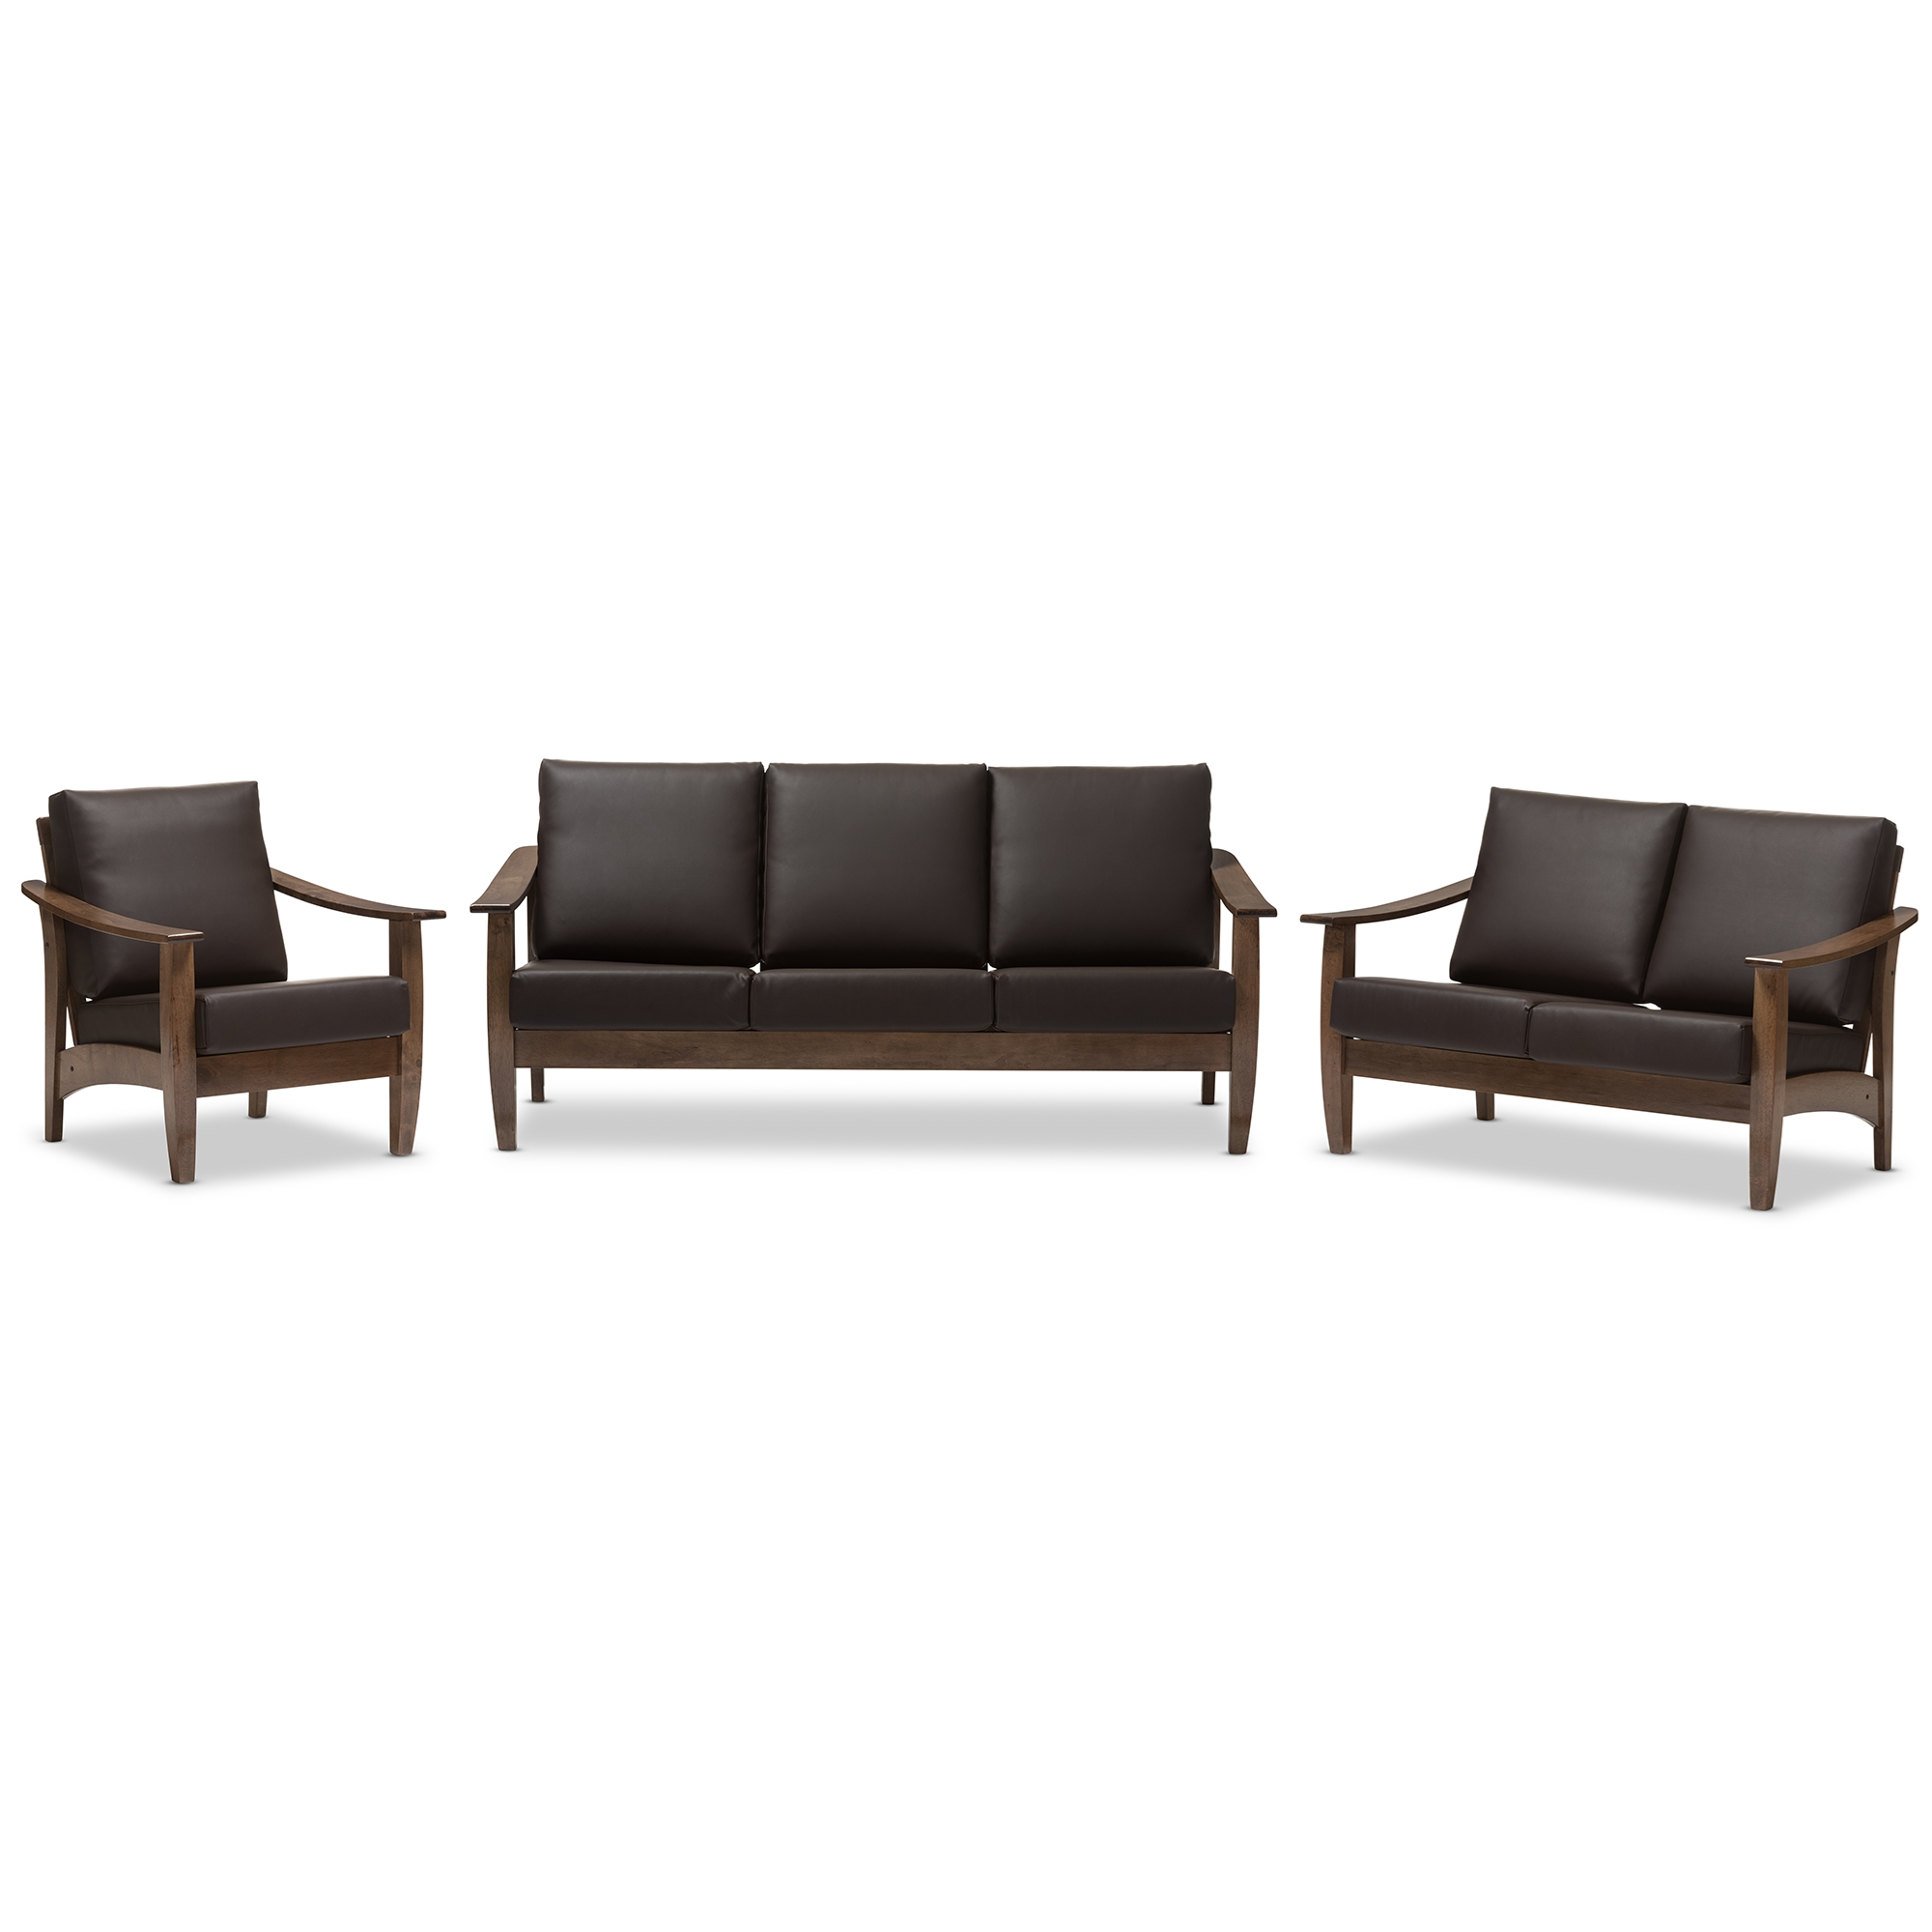 Baxton Studio Pierce Mid Century Modern Walnut Brown Wood